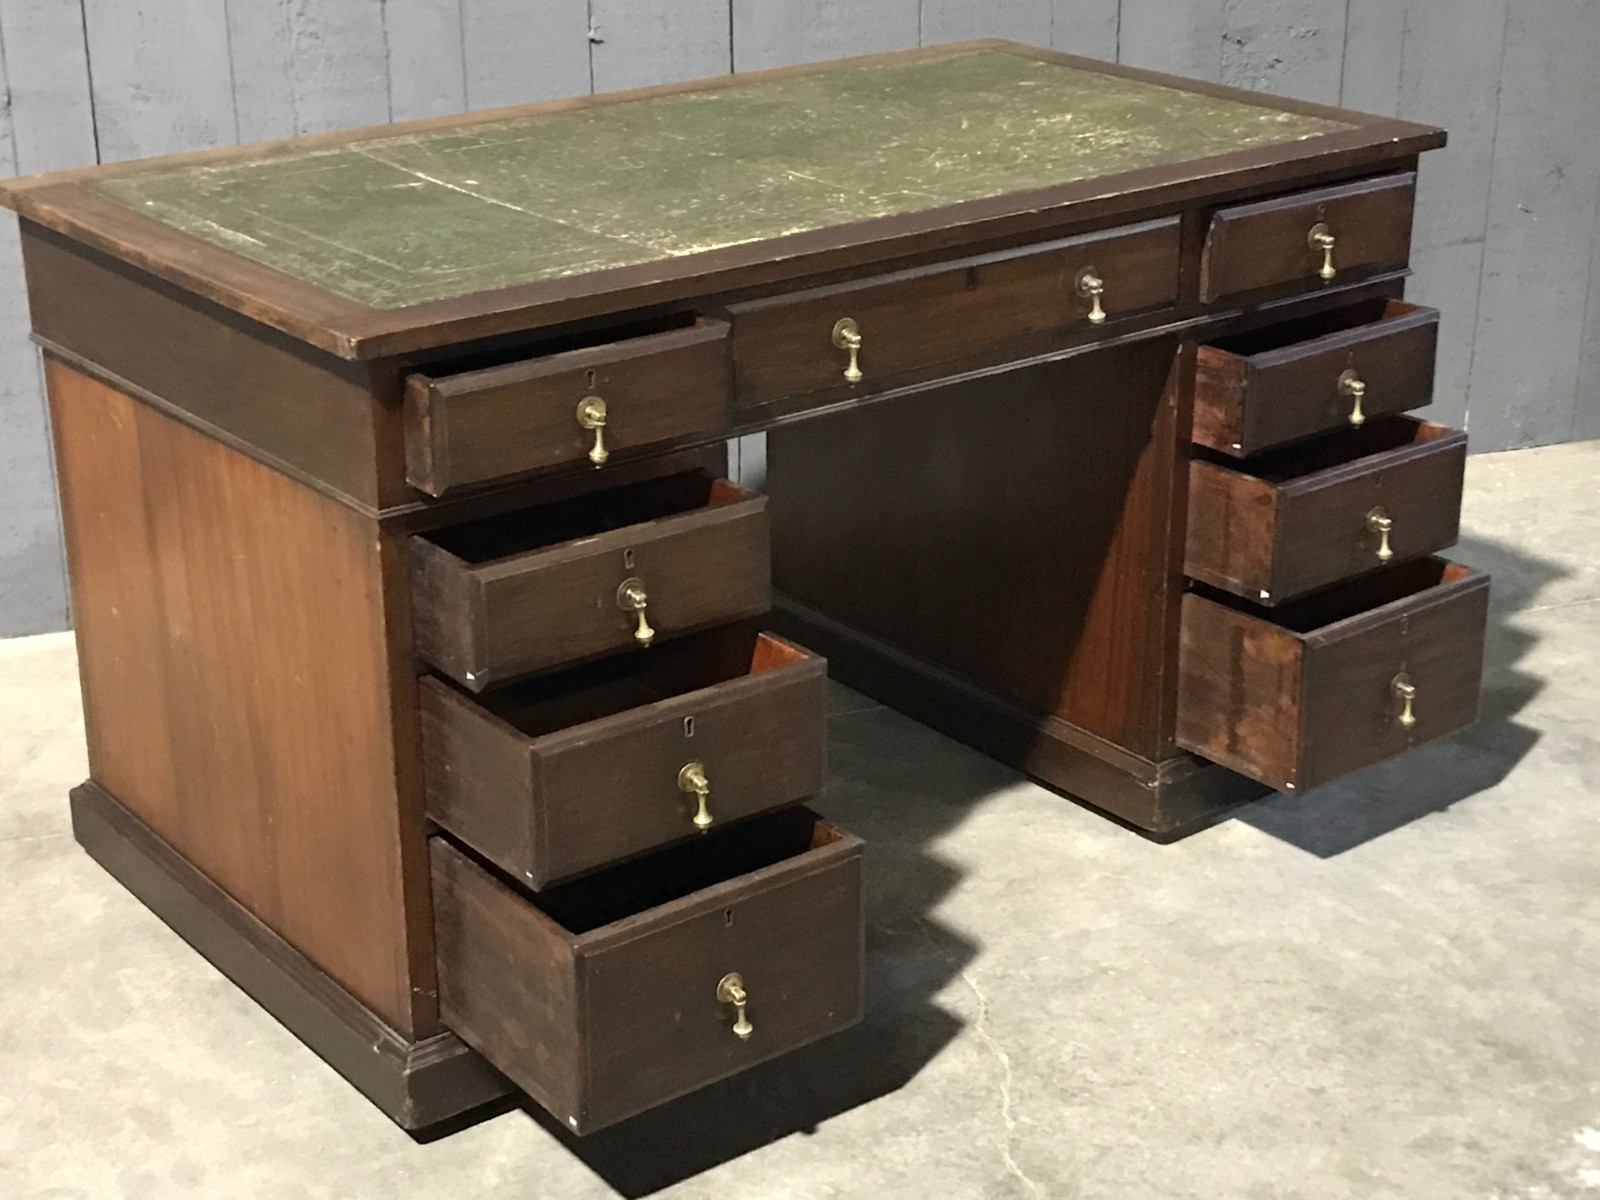 Desks With Drawers Mahogany English Desk With Drawers With Green Leather Top Desks